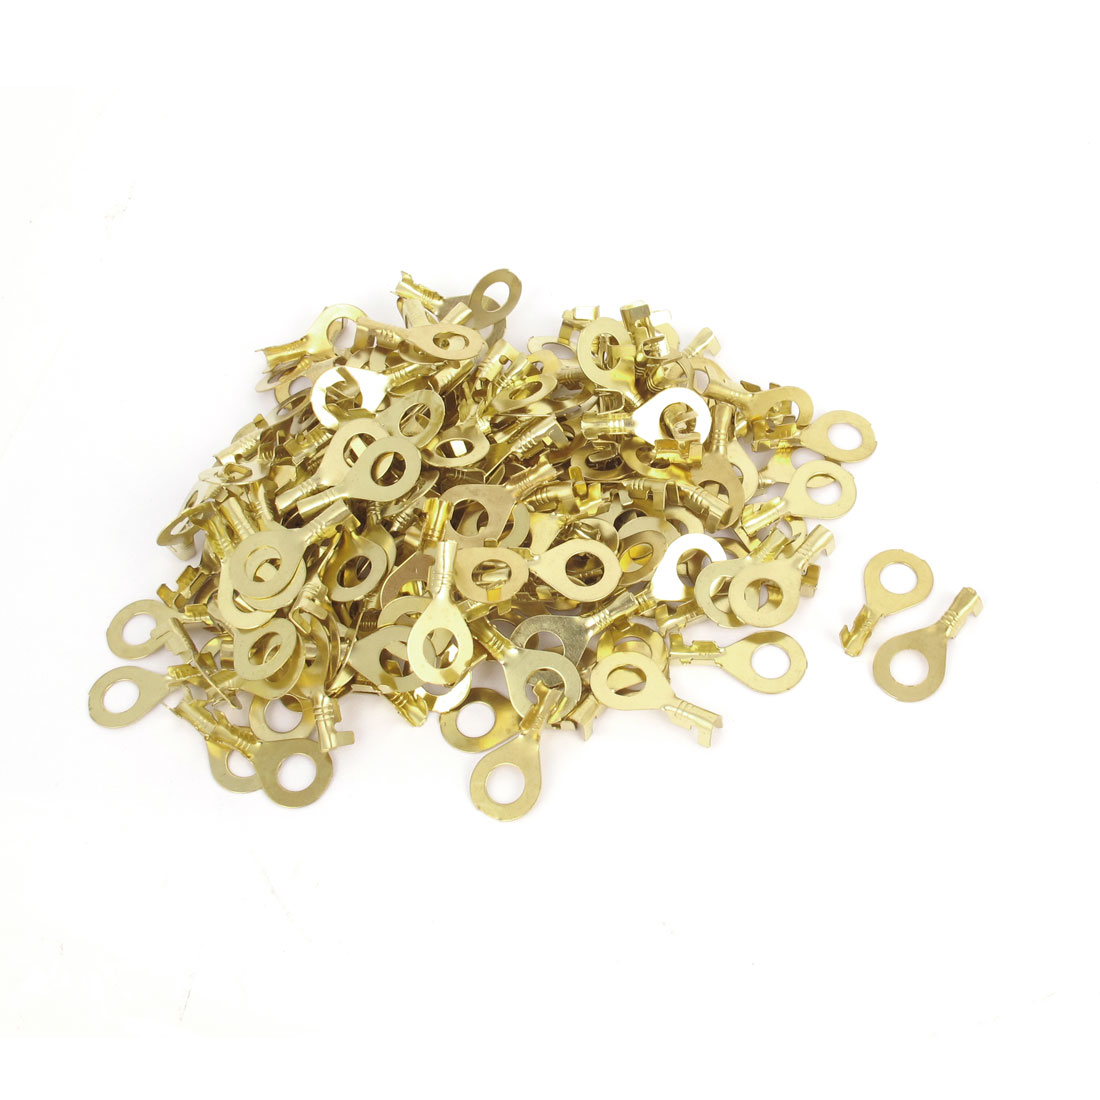 200 Pcs 17A AWG9-3 Wire Cable M6 Stud Connecting Copper Tongue Rewirable Non-insulated Ring Terminals